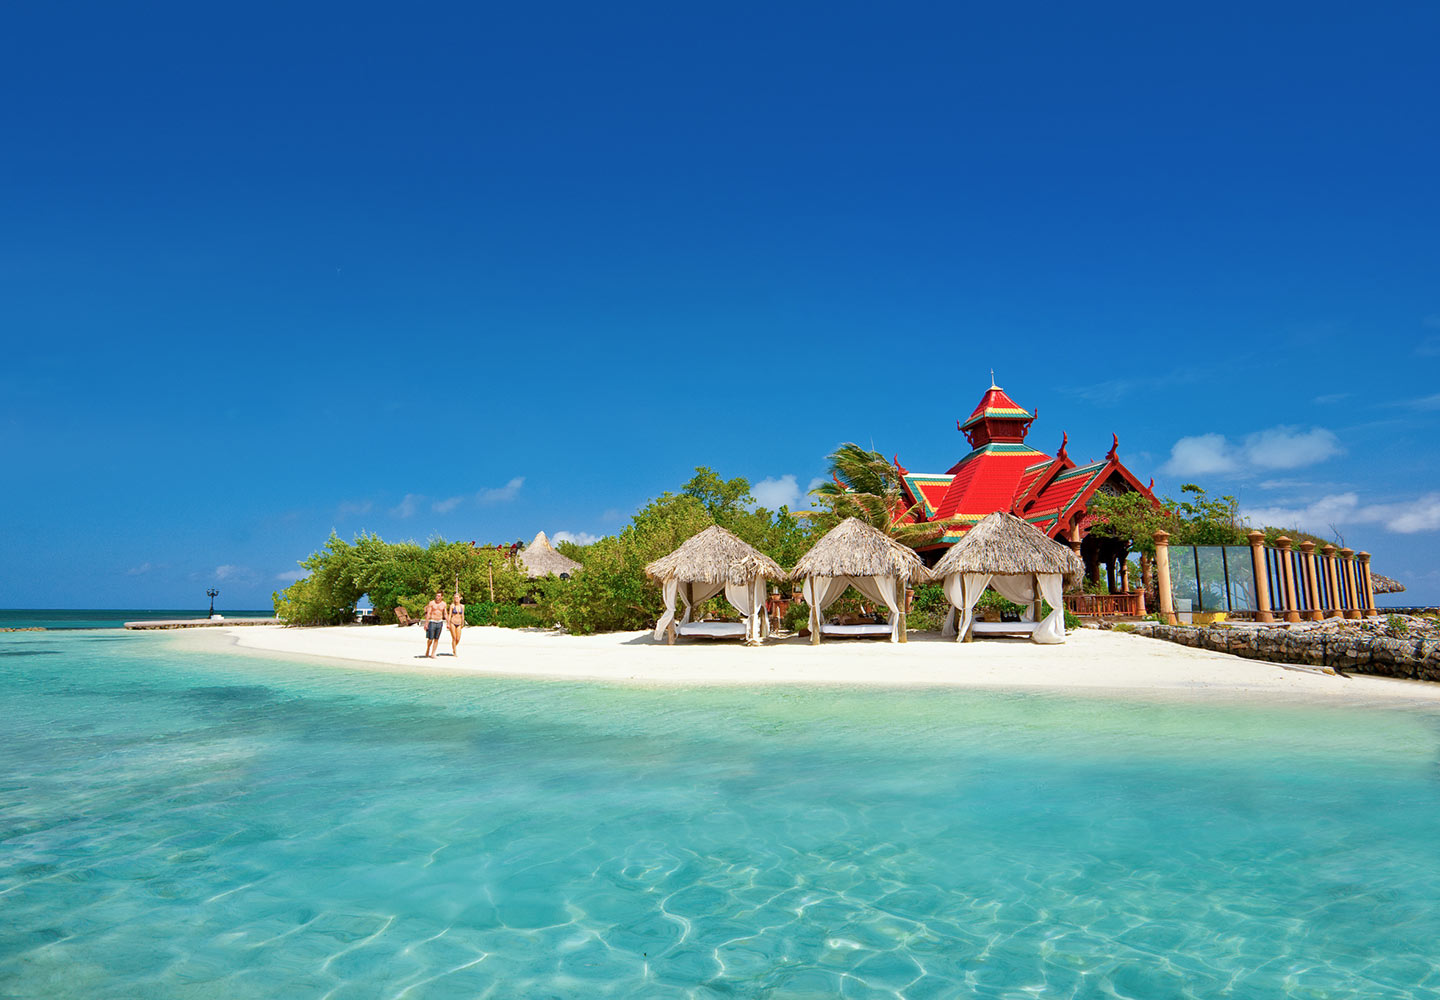 Sandals Royal Caribbean- Private Island